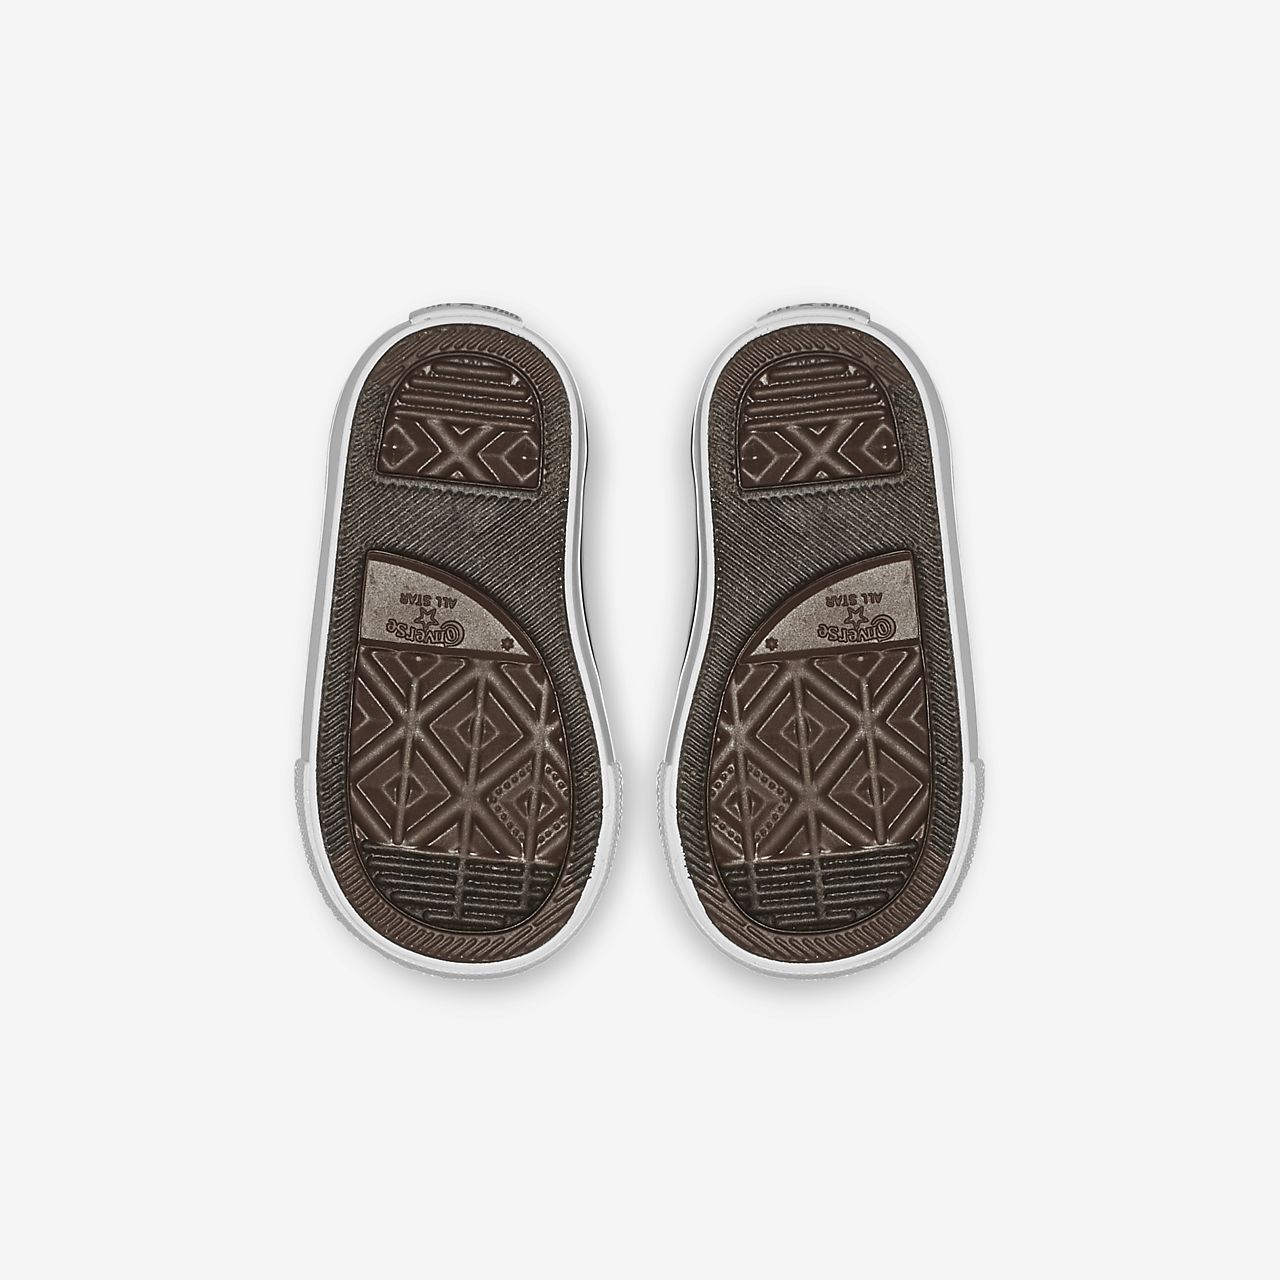 ... Converse Chuck Taylor All Star High Top Infant/Toddler Shoe